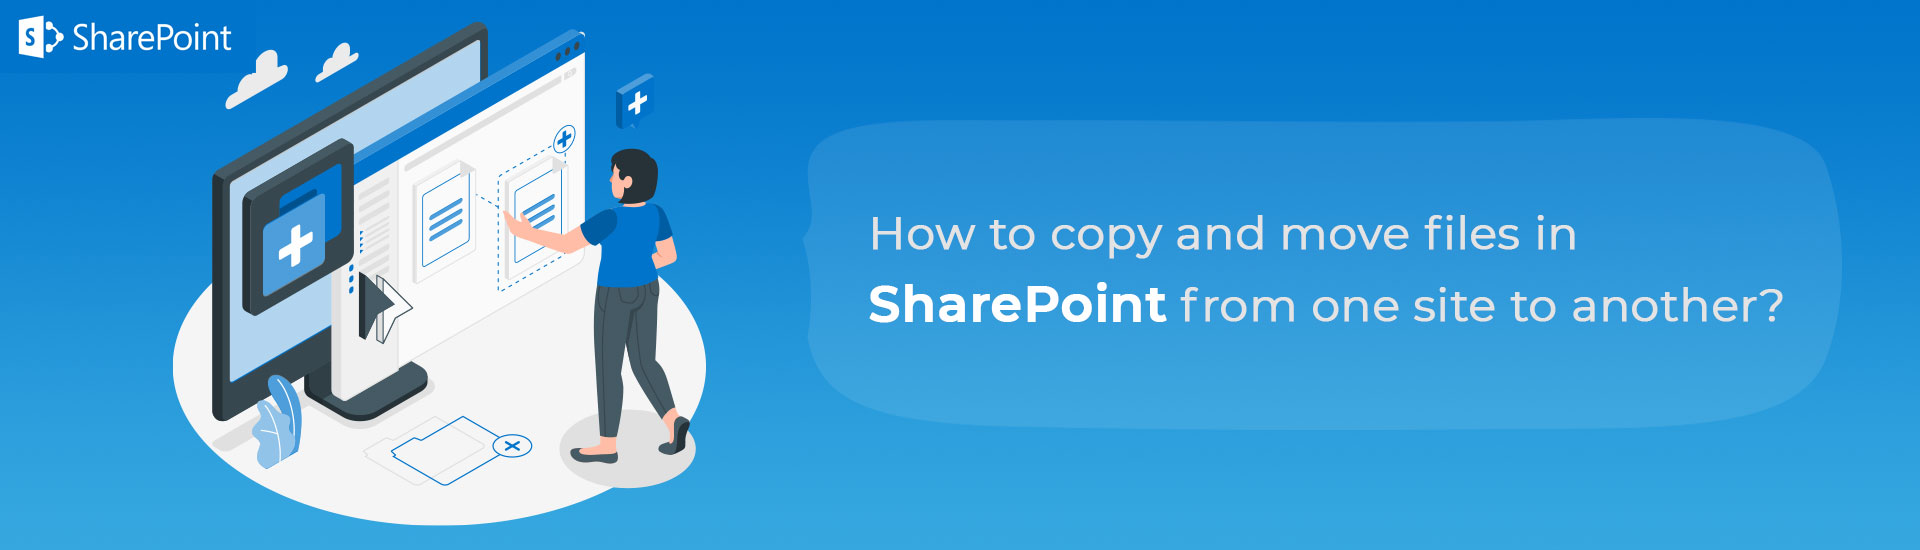 How to copy and move files in SharePoint from one site to another?